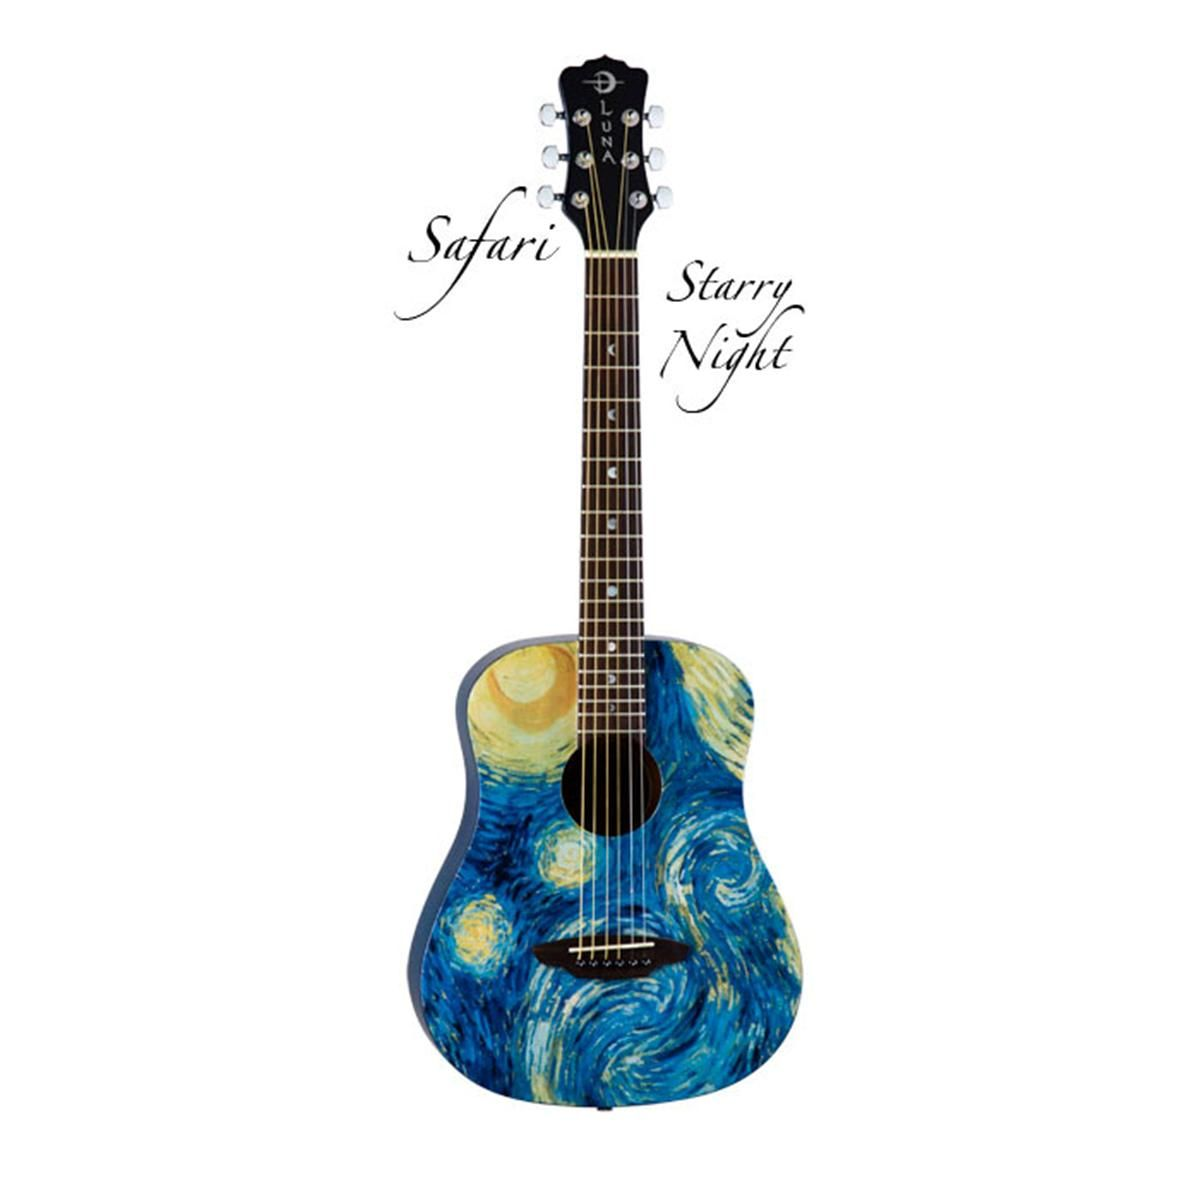 Luna Safari Starry Night Spruce Top Acoustic Guitar Translucent Blue Luna Guitars Ukulele Art Guitar